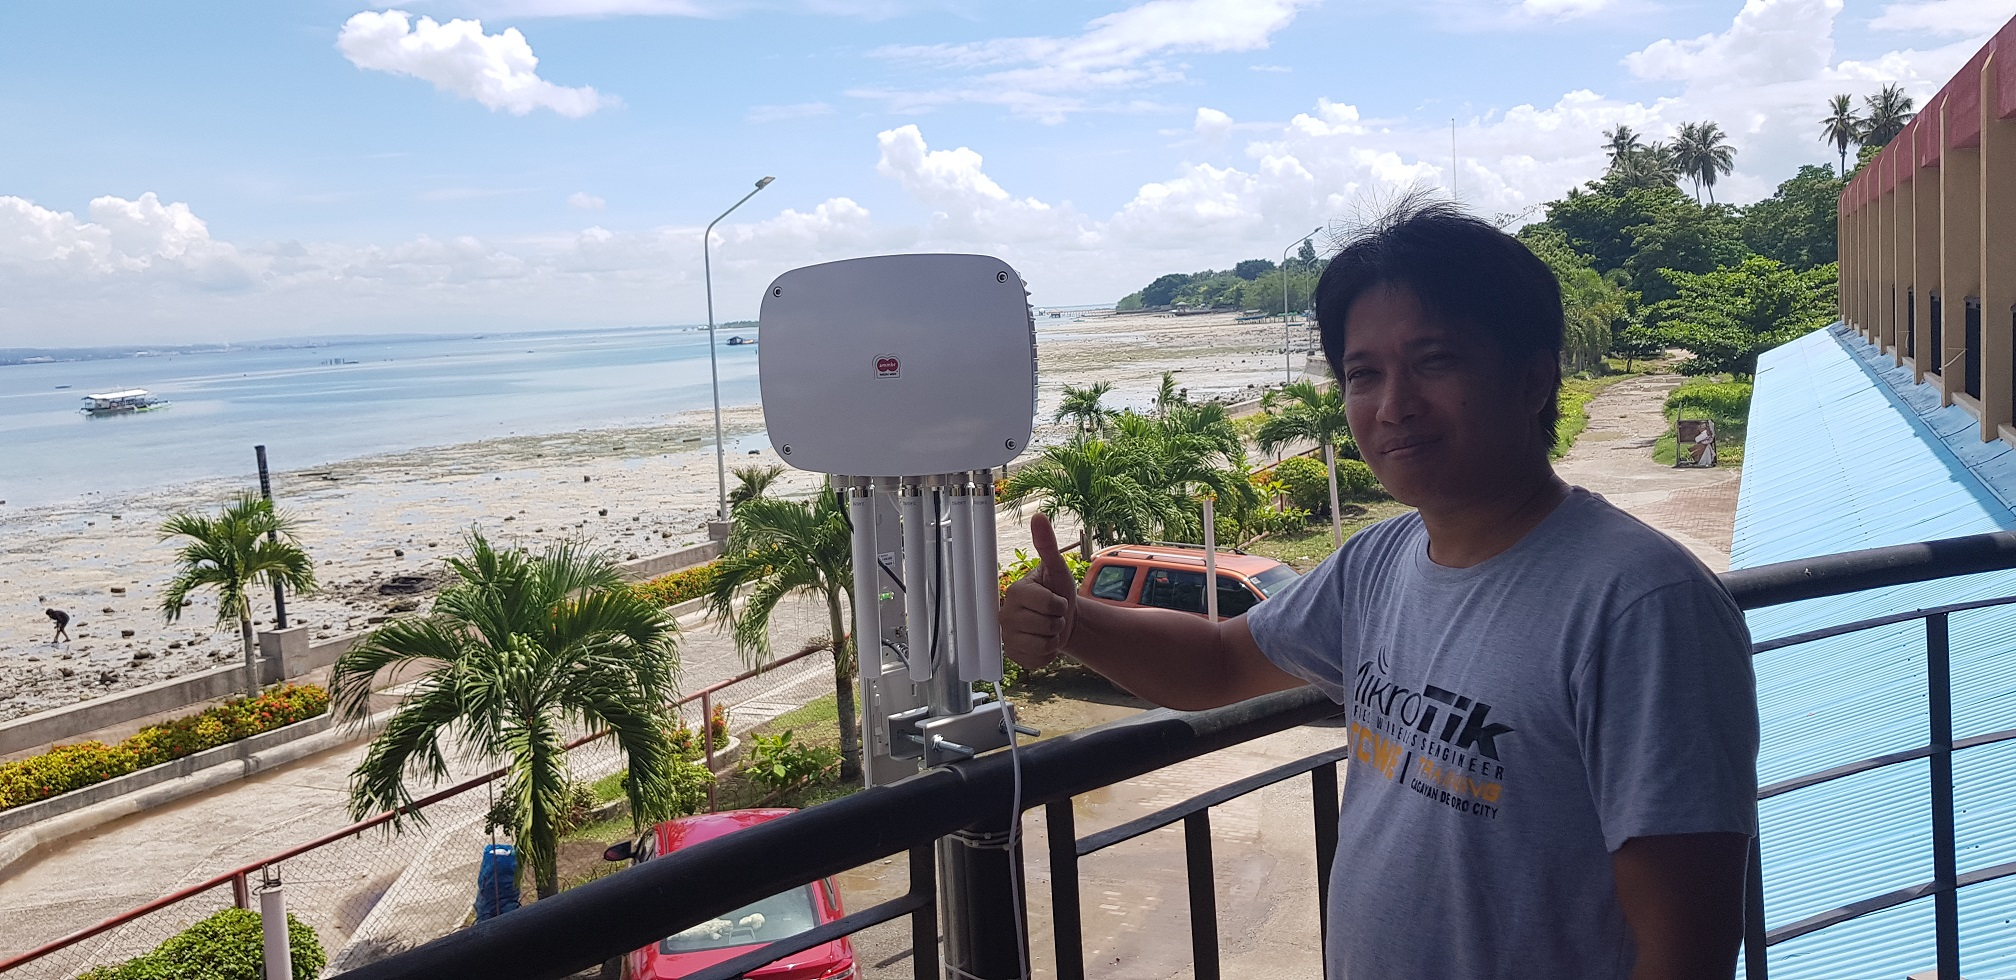 Ammbr Deployed by Tier One on Samal Island